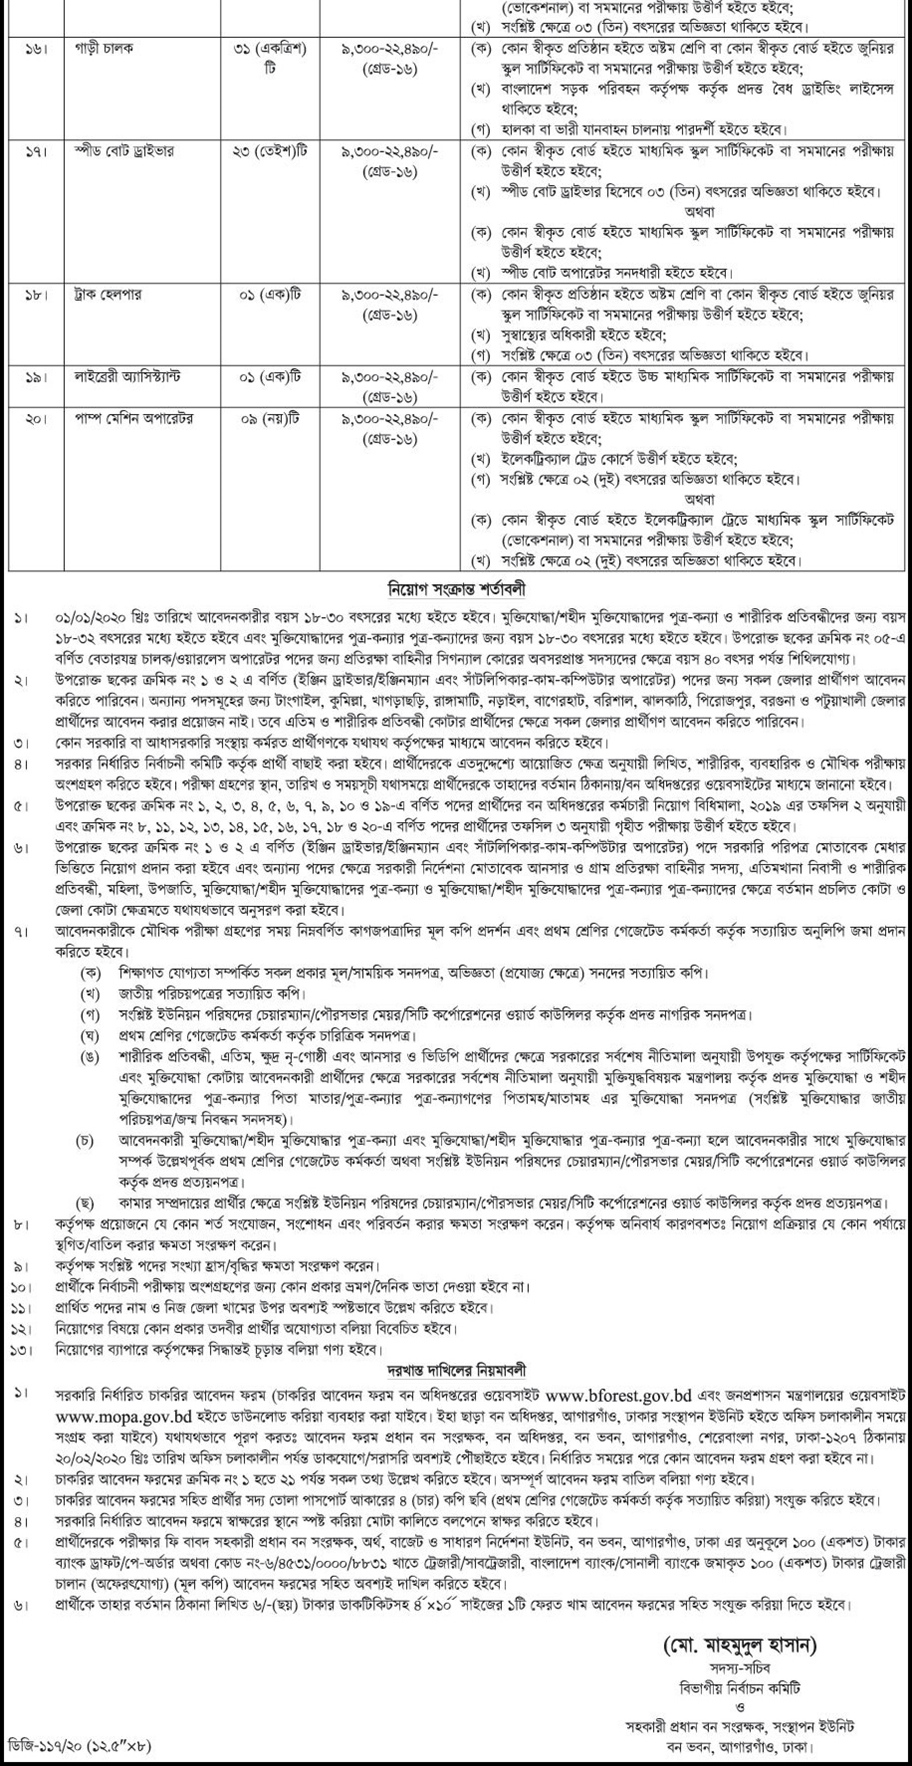 forest department published a job circular. Forest Department published a Job Circular. jobs73395b